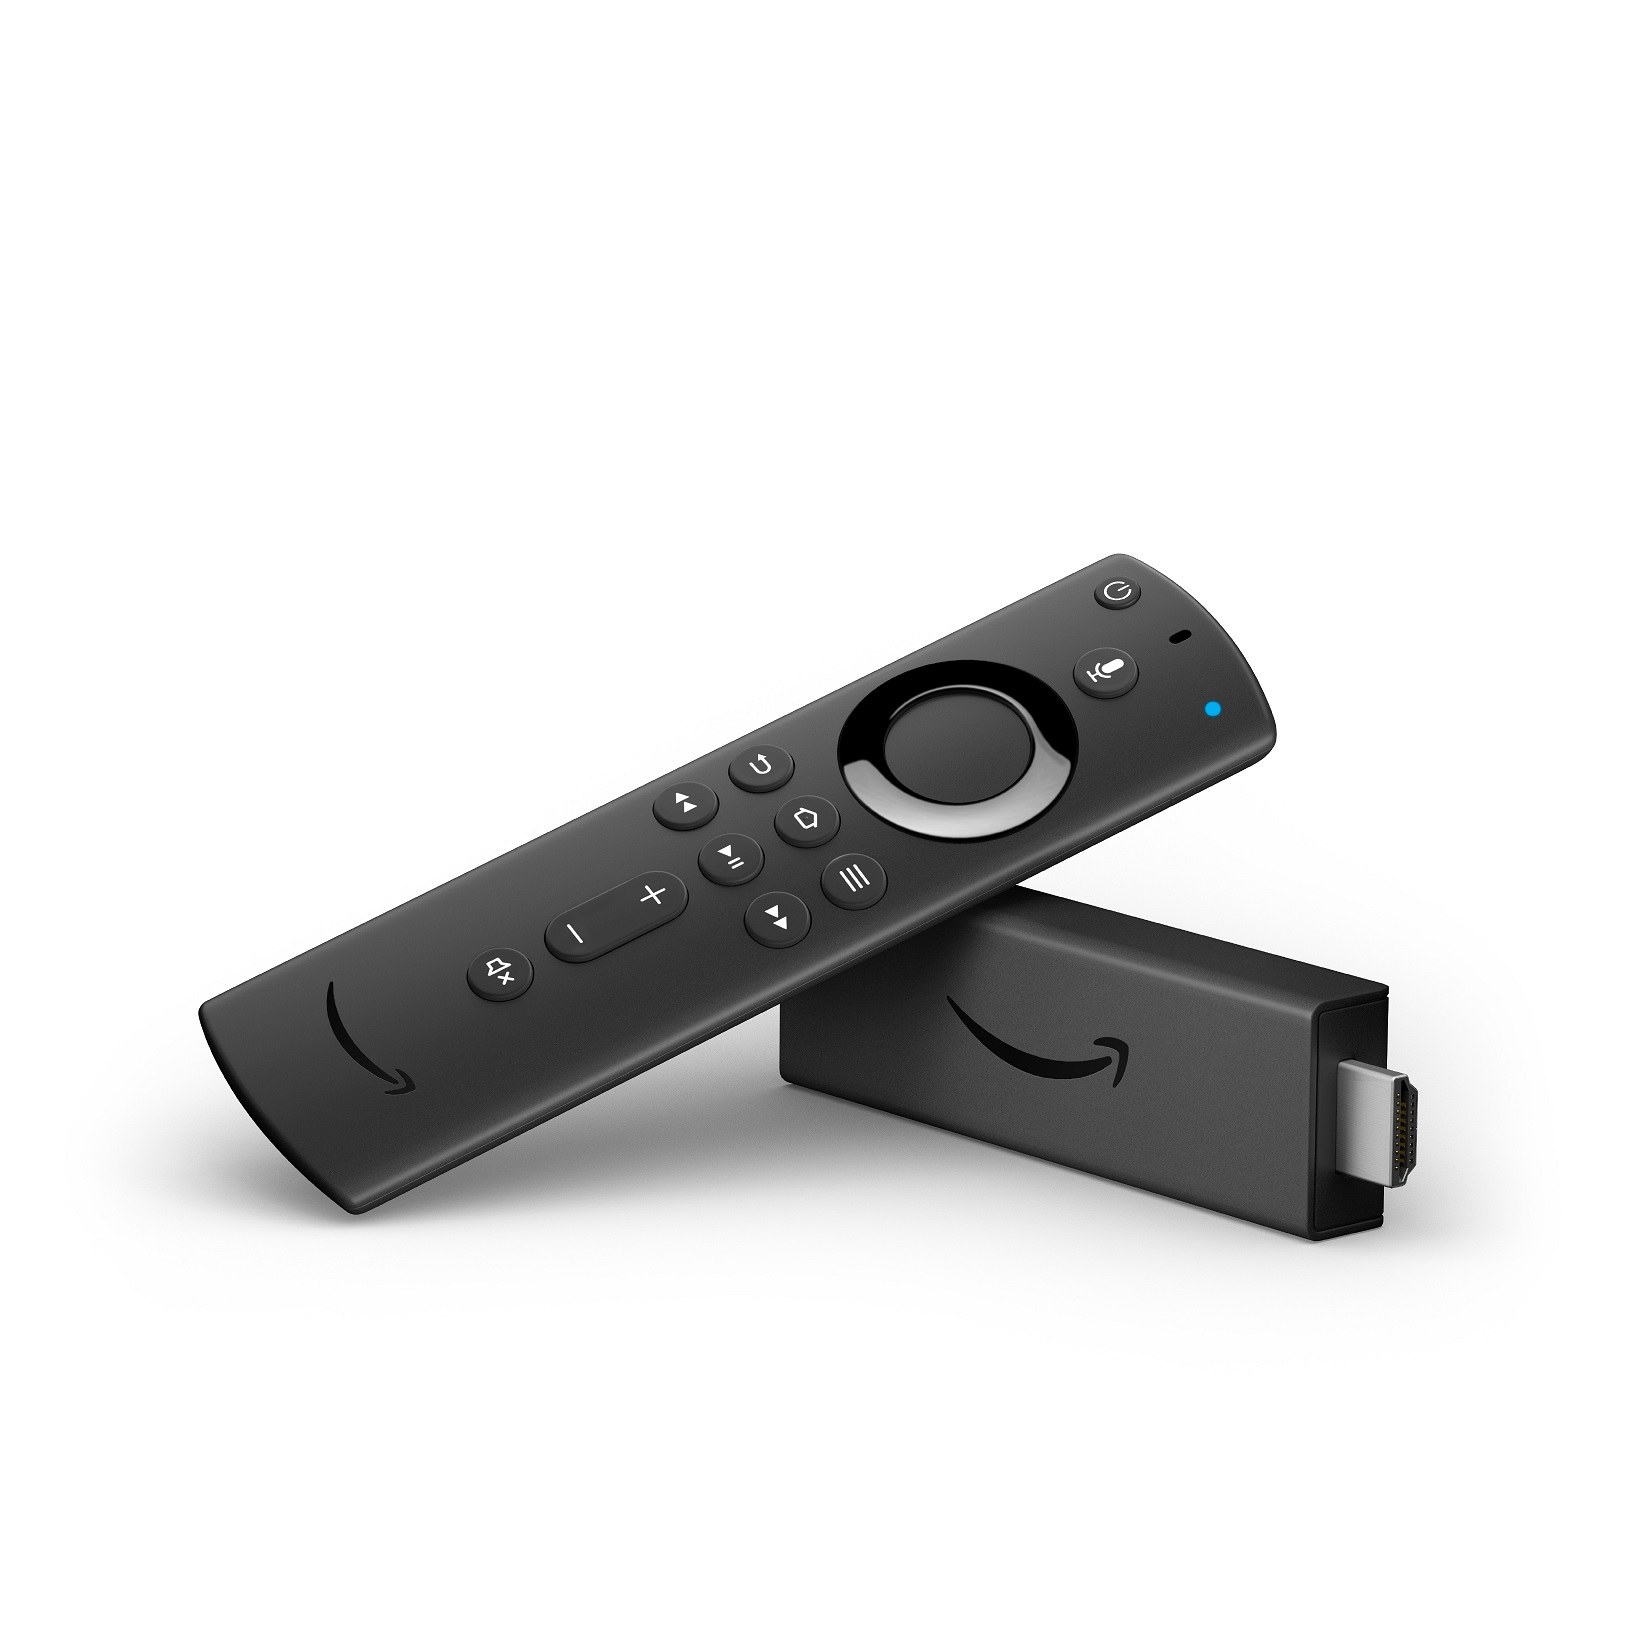 Amazon Brings The Fire TV Stick 4K & Fire TV Edition TVs